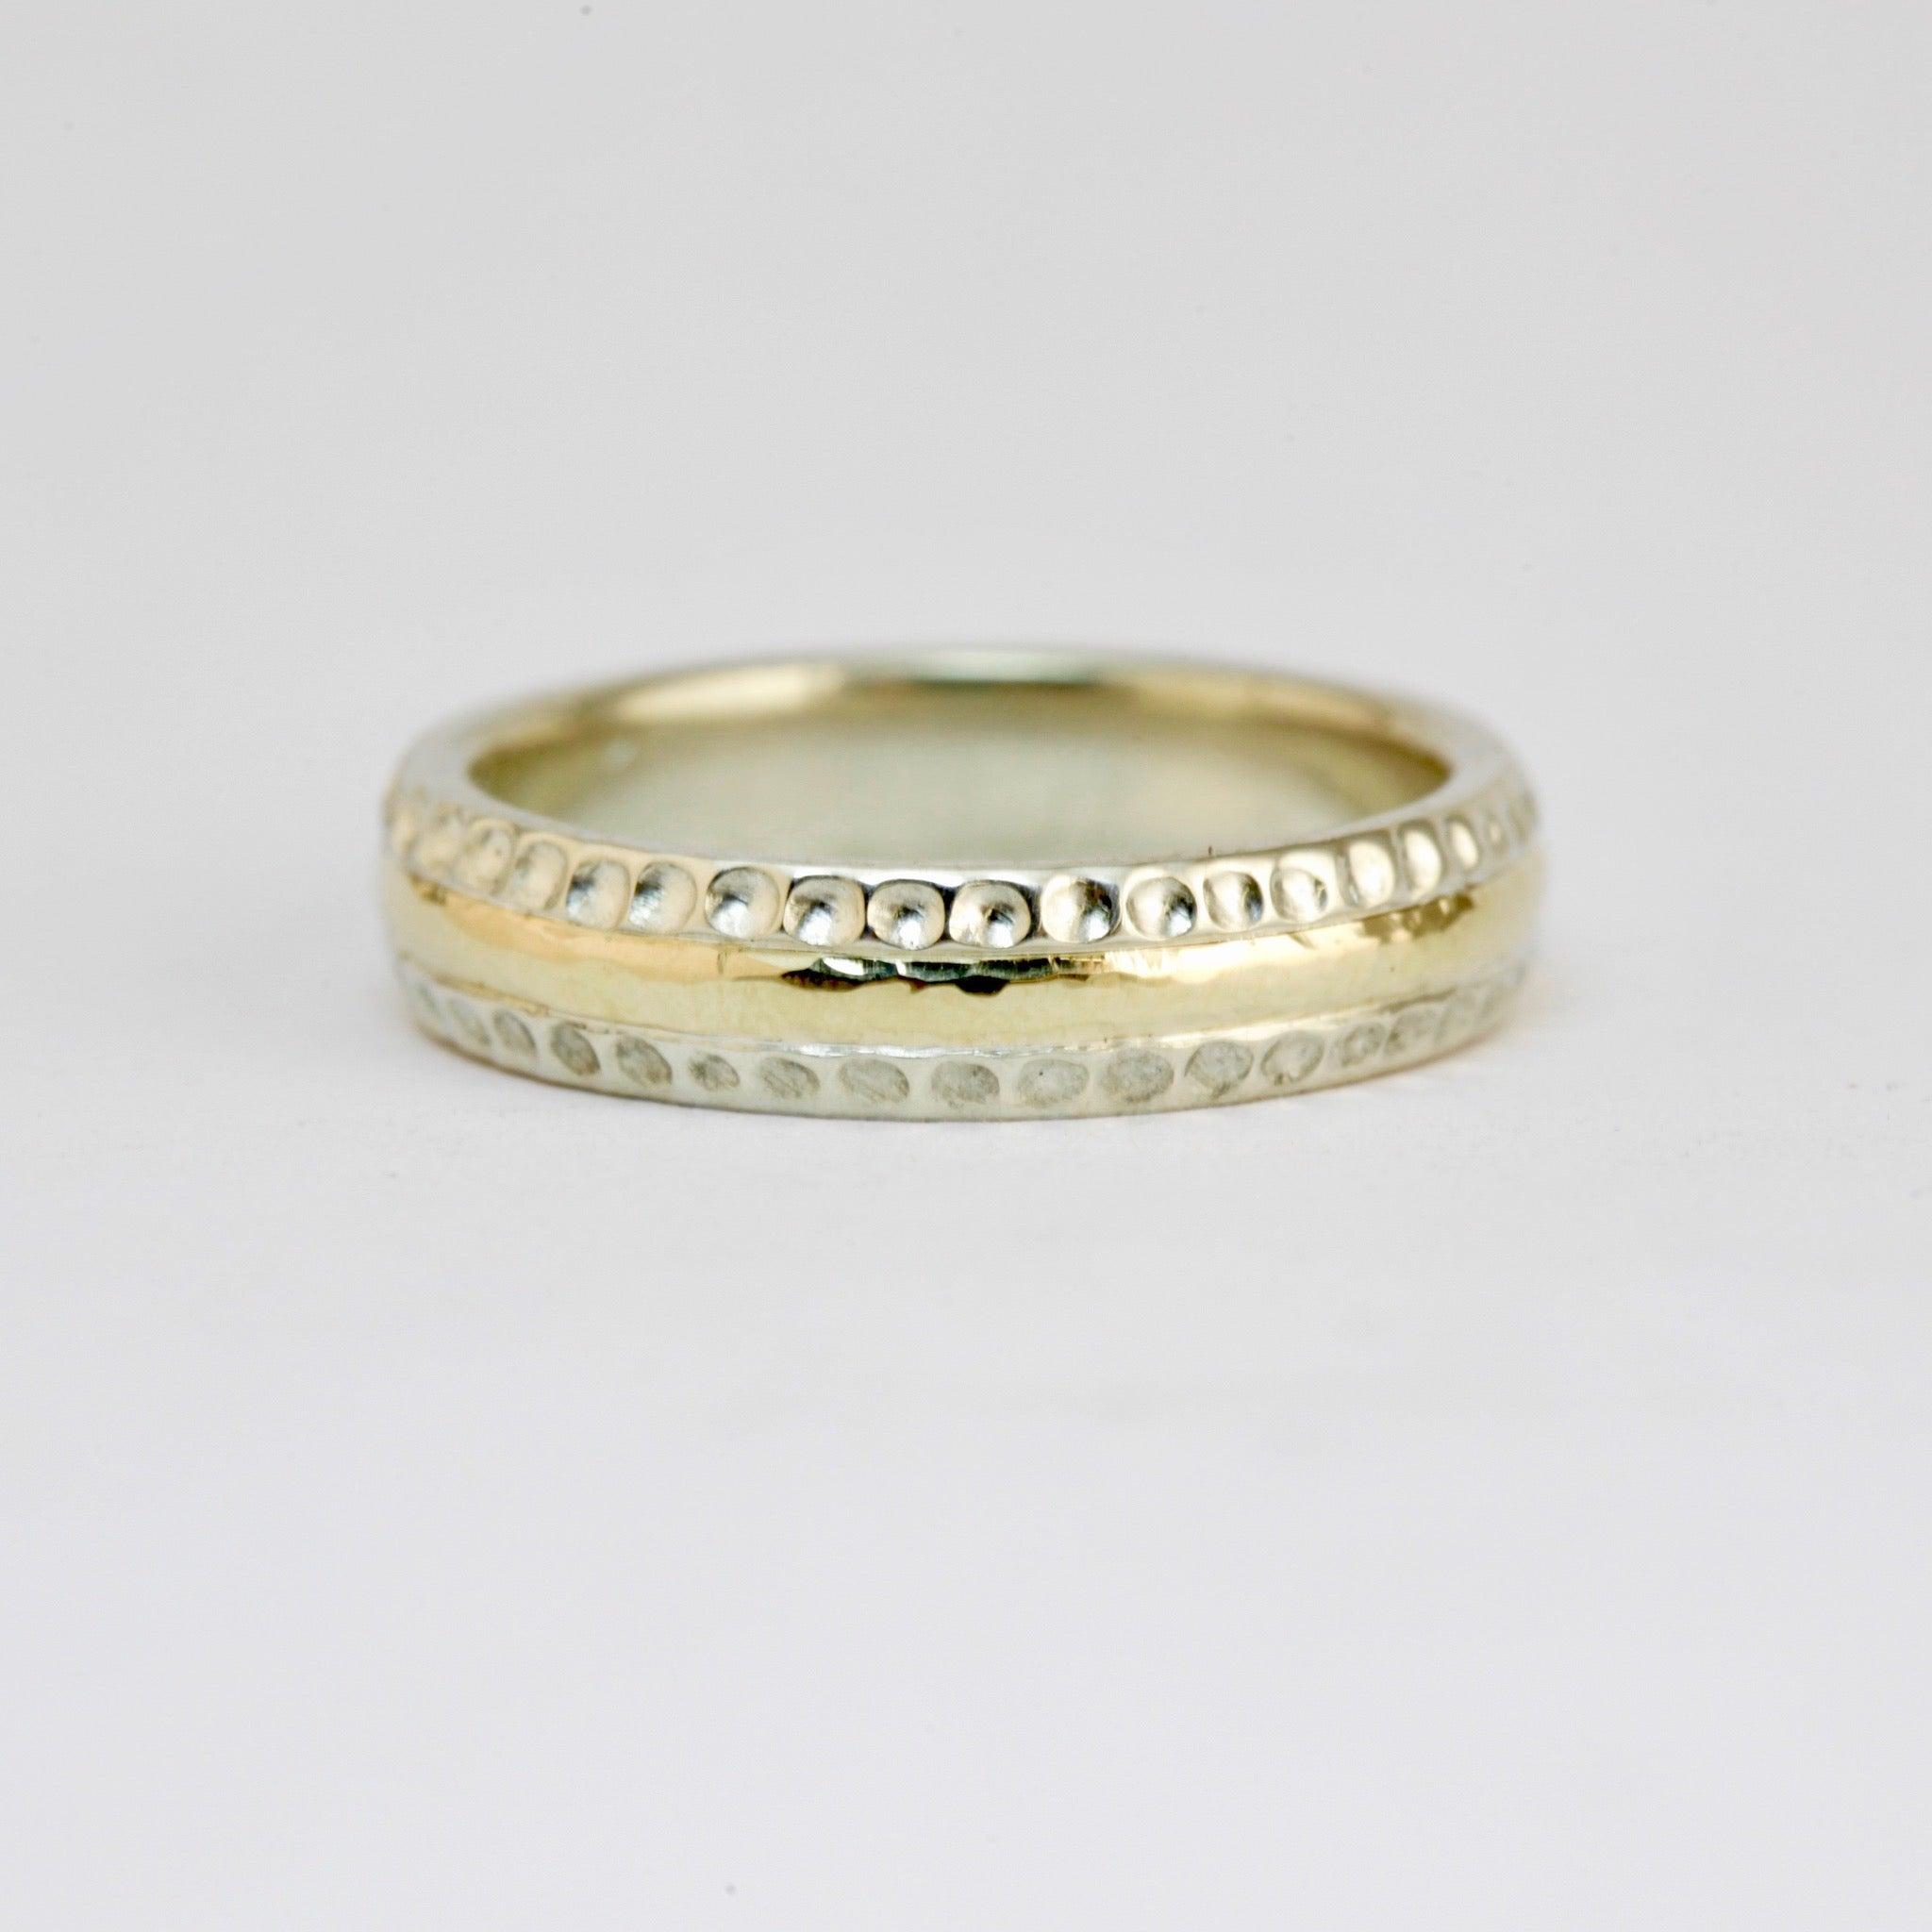 Handmade Yellow and White Gold Wedding Band.